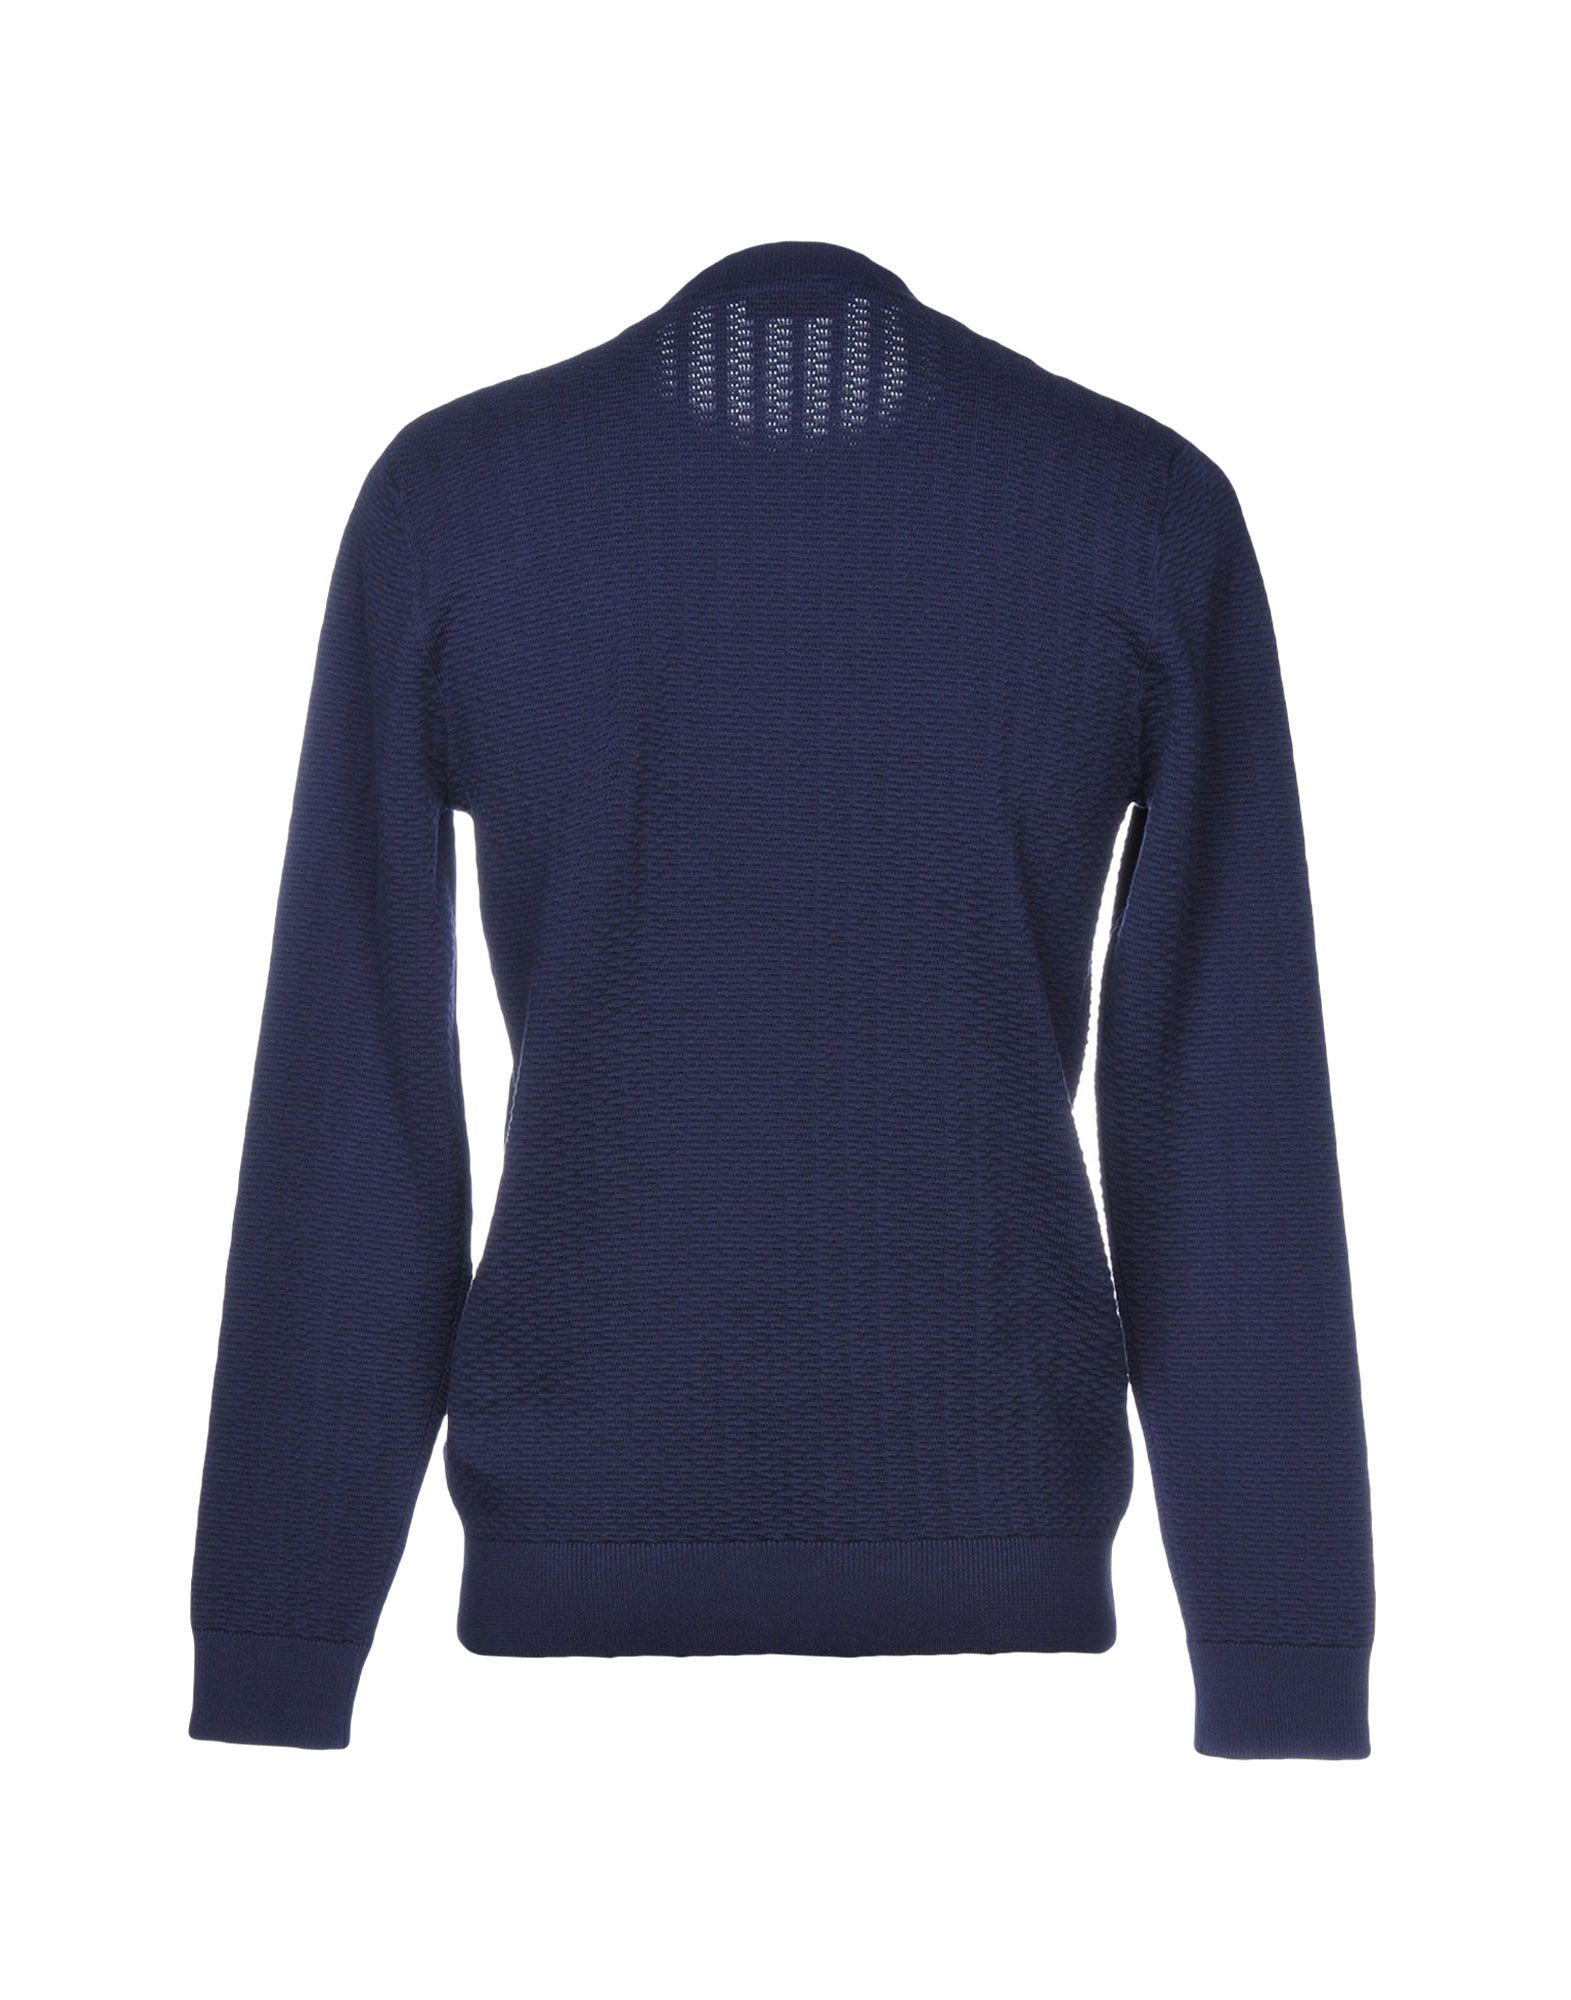 Pullover 39865613CF Selected Homme Uomo - 39865613CF Pullover c7429e